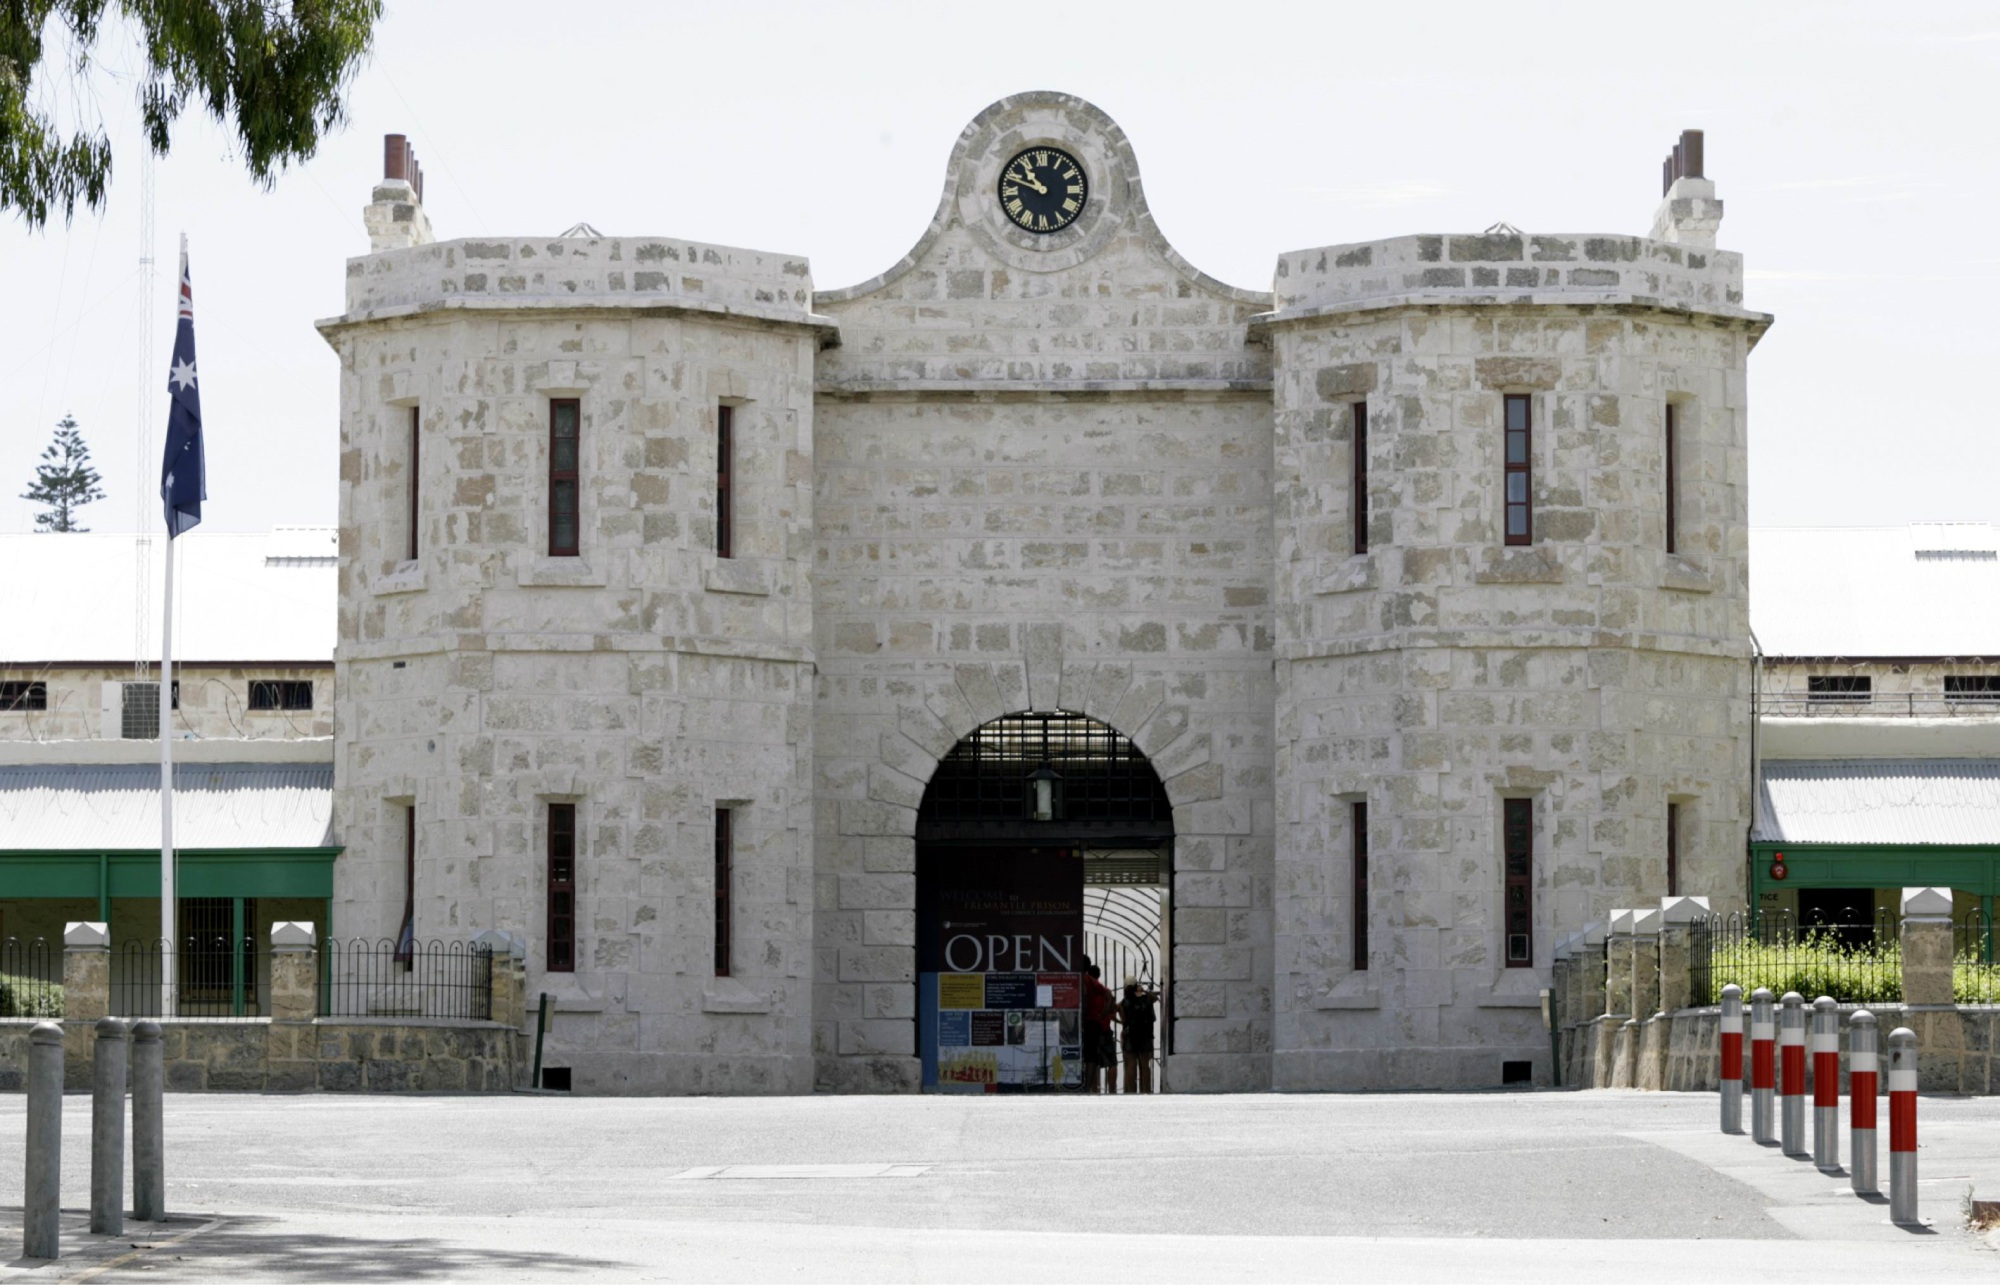 Fremantle Prison was named one of the top 10 tourist sites in the country.